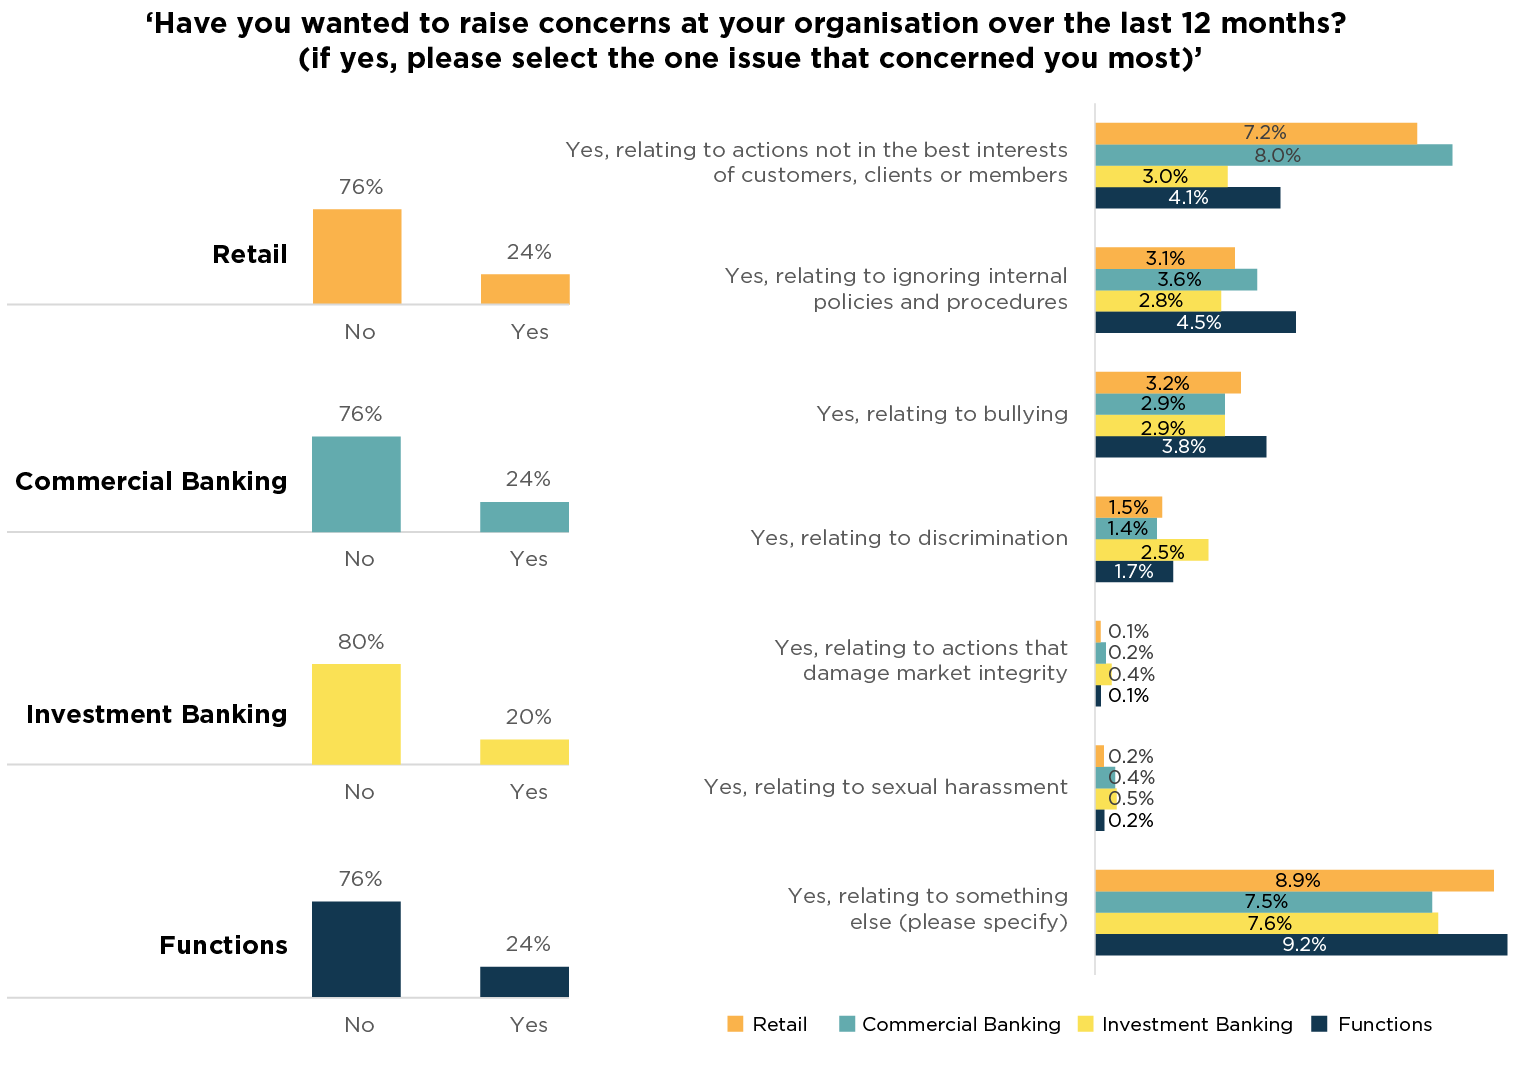 Fig 22. BSB Survey 2018 additional question – issues about which employees had wanted to raise concerns, by business area